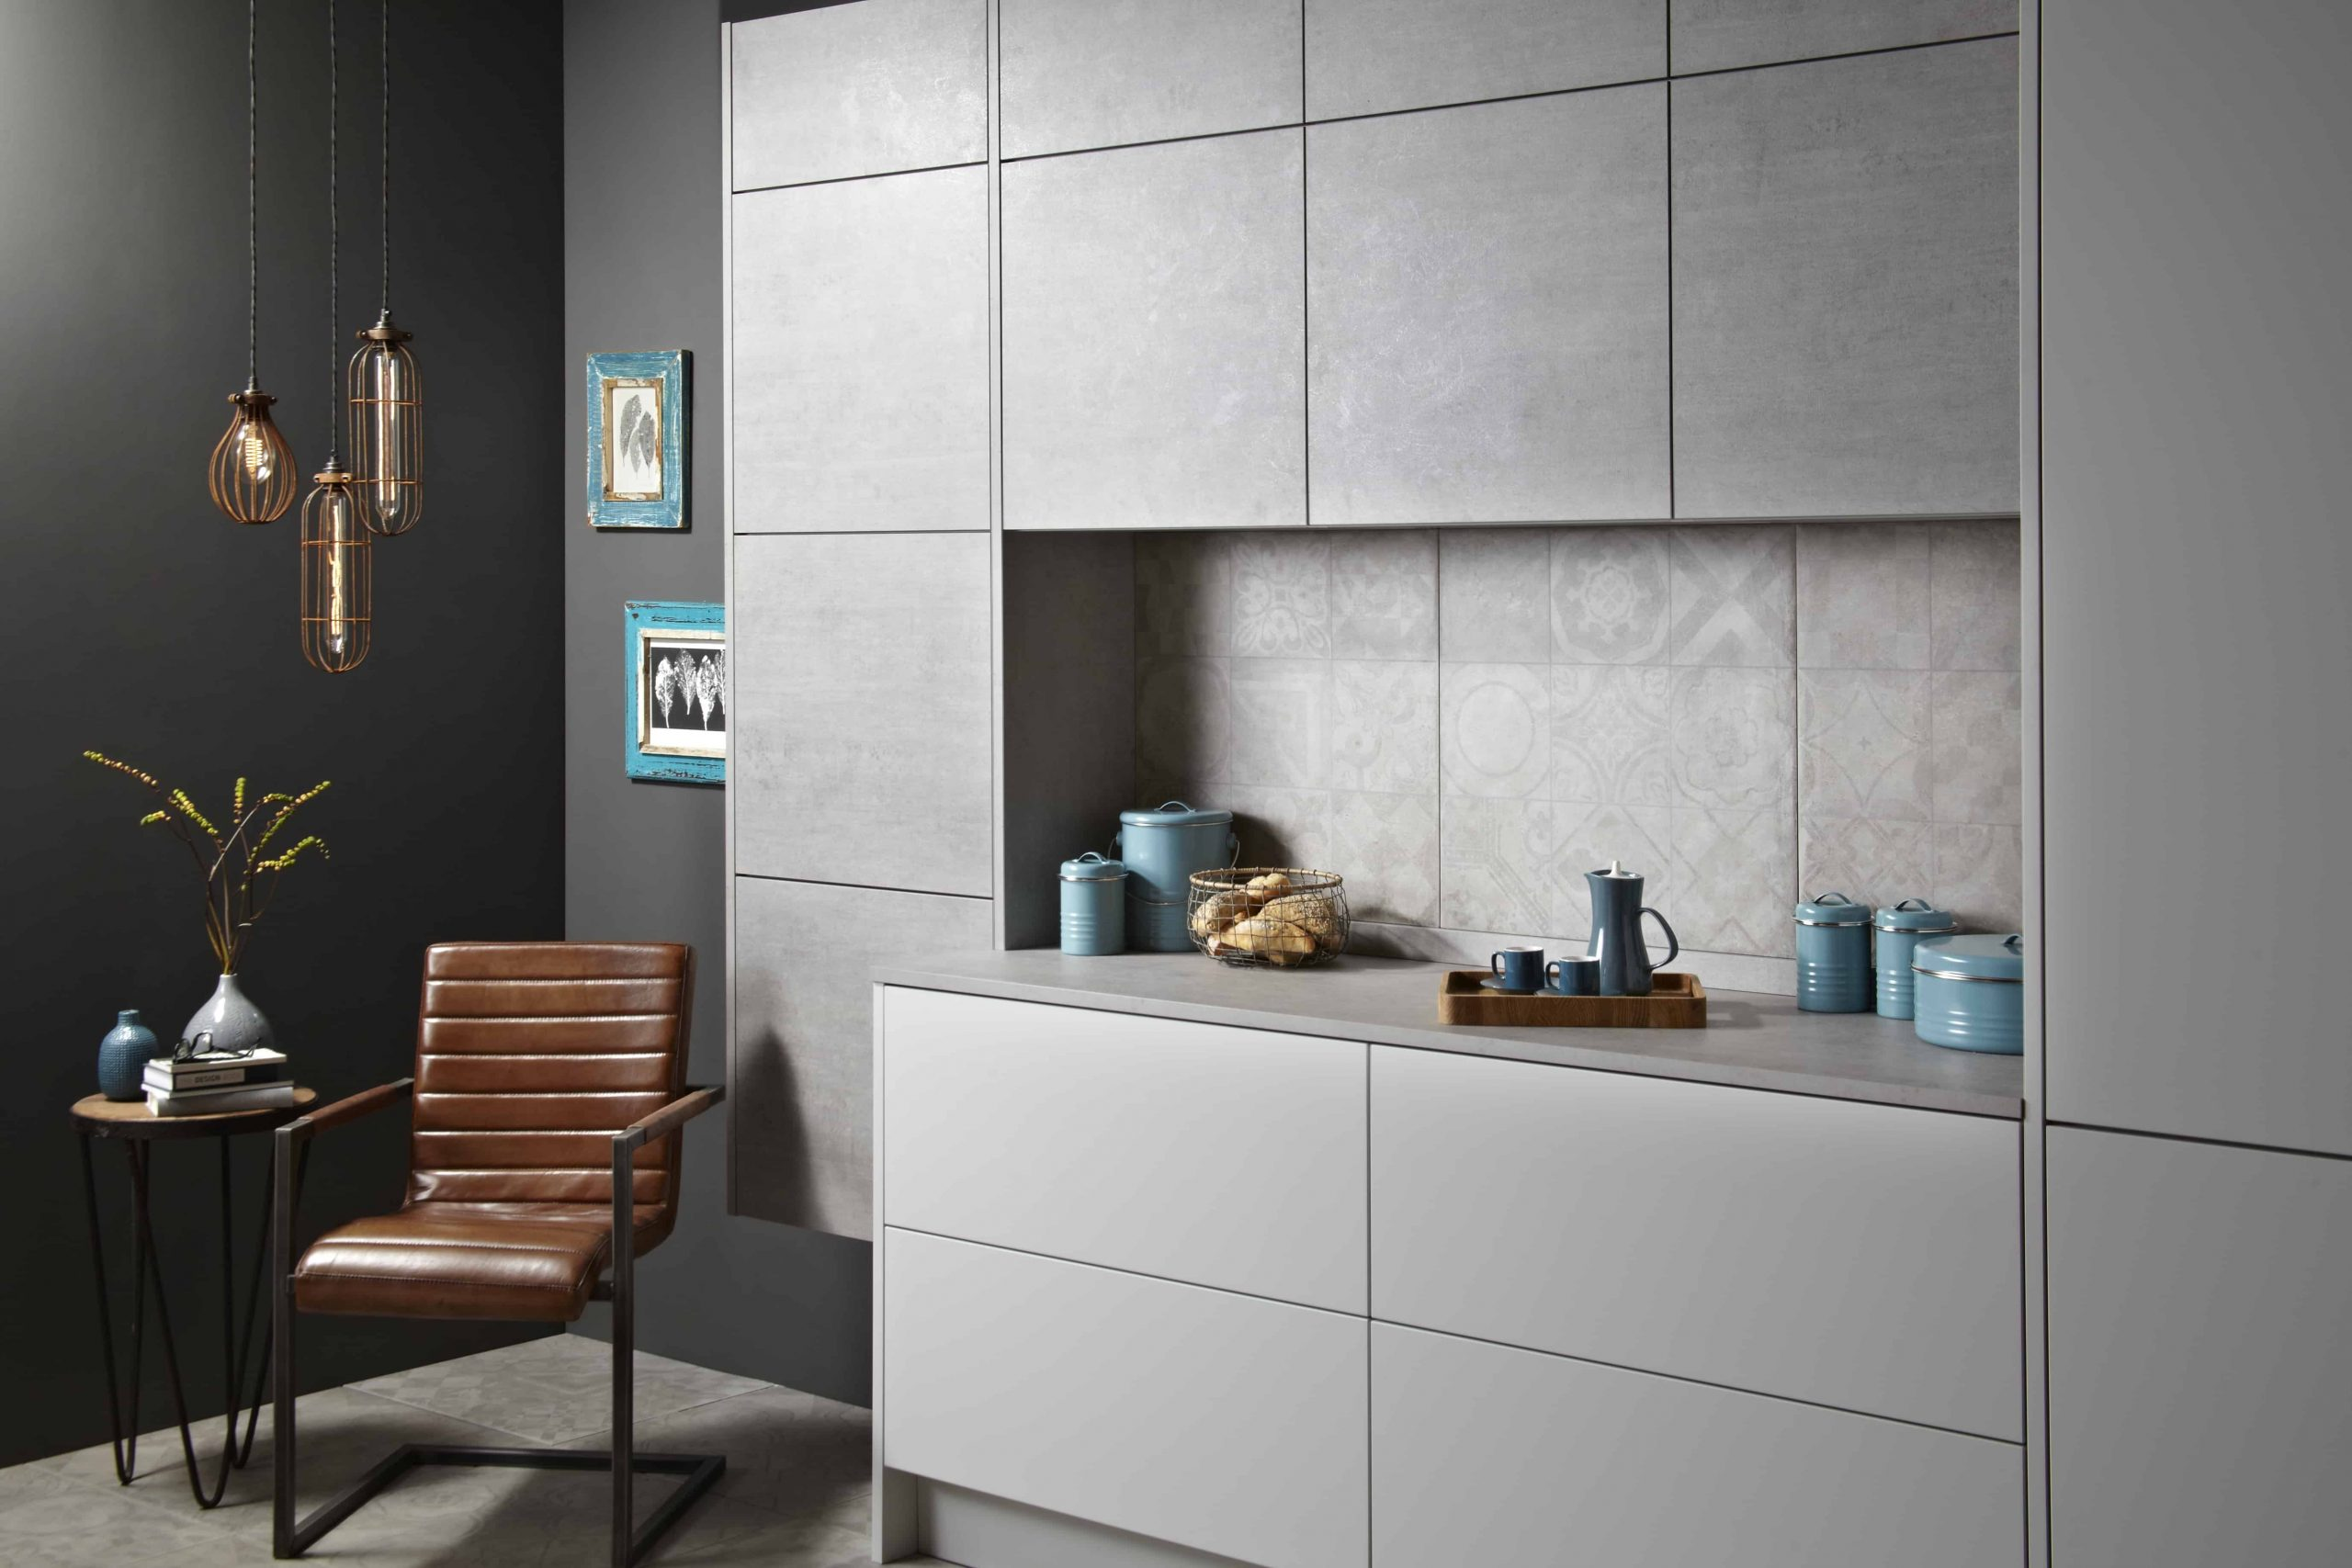 Top Kitchen Trends For 2017|Noble Kitchens intended for Kitchen Interior Design Trends 2017